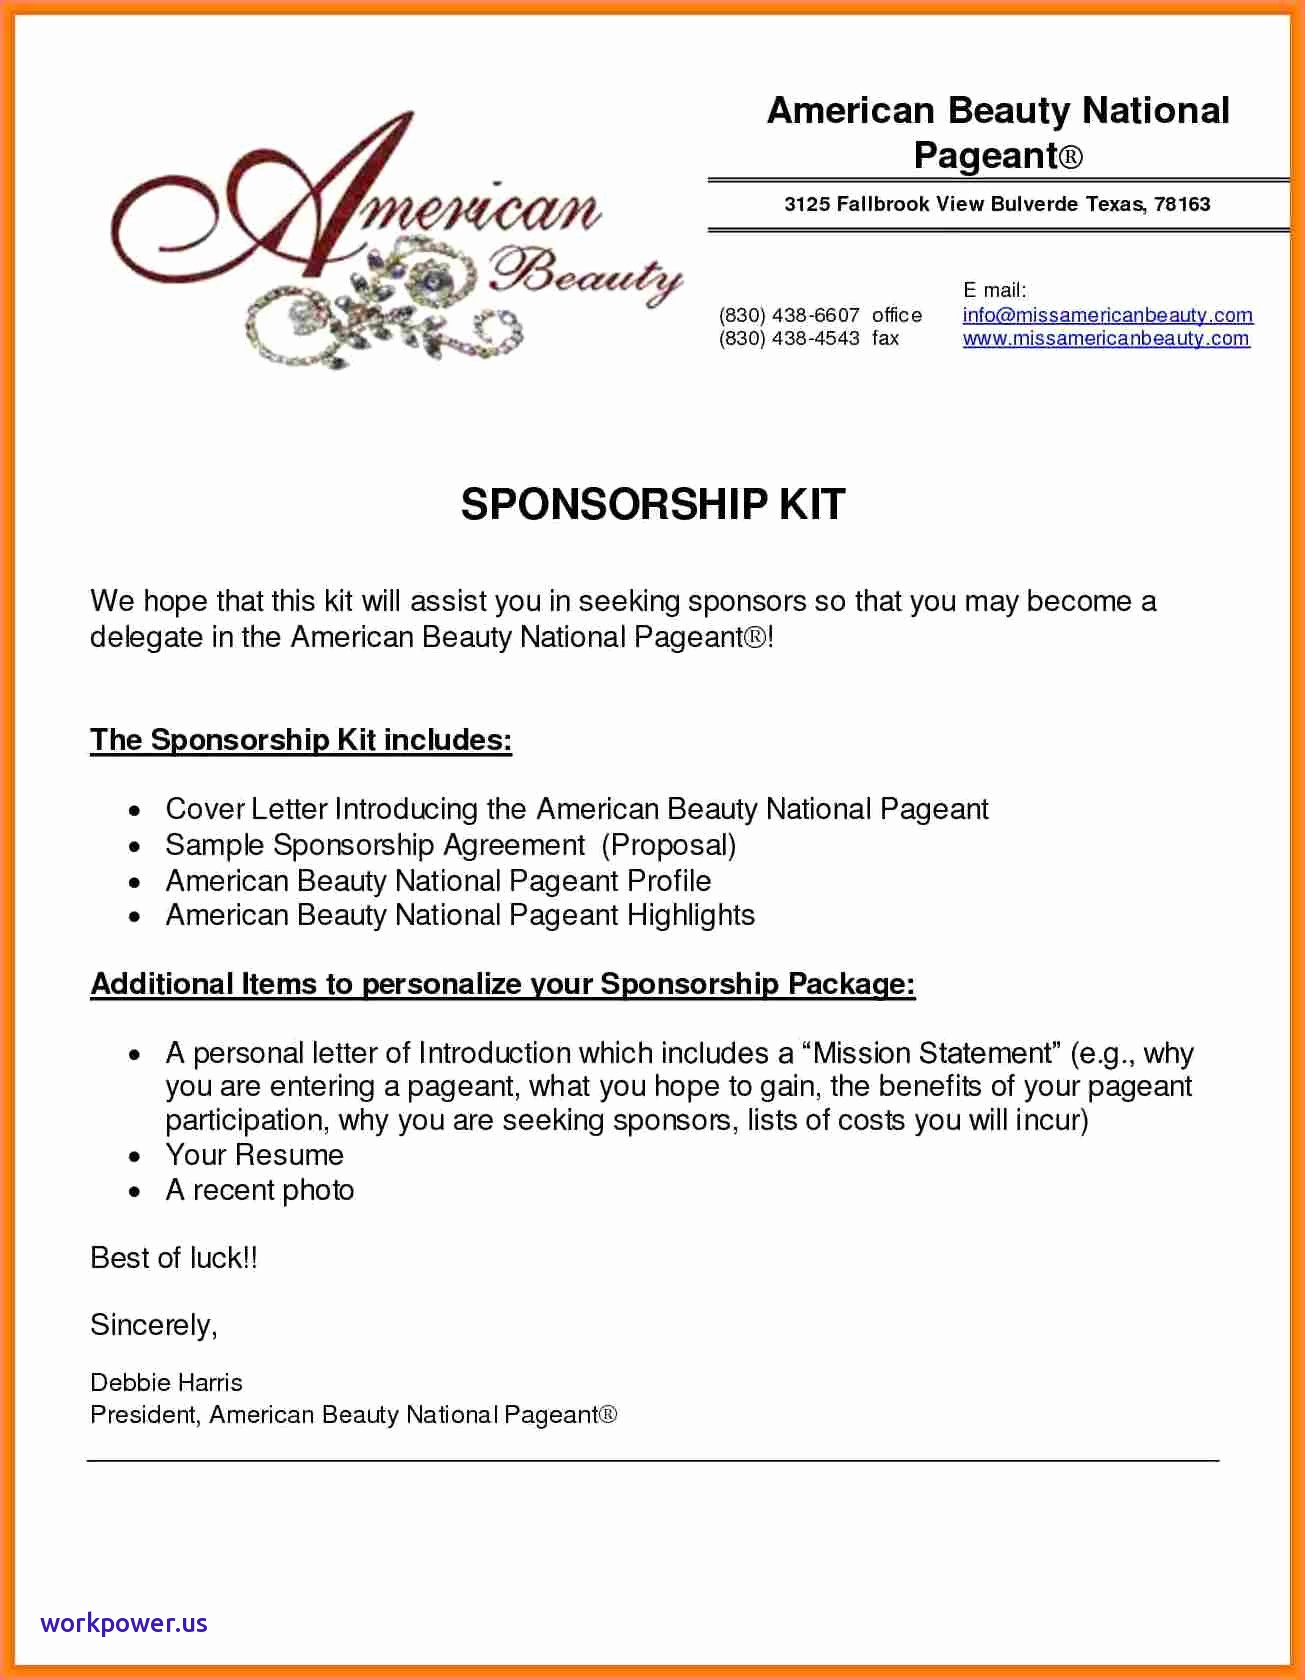 Youth Football Sponsorship Letter Template - Sponsorship Packages for Youth Football